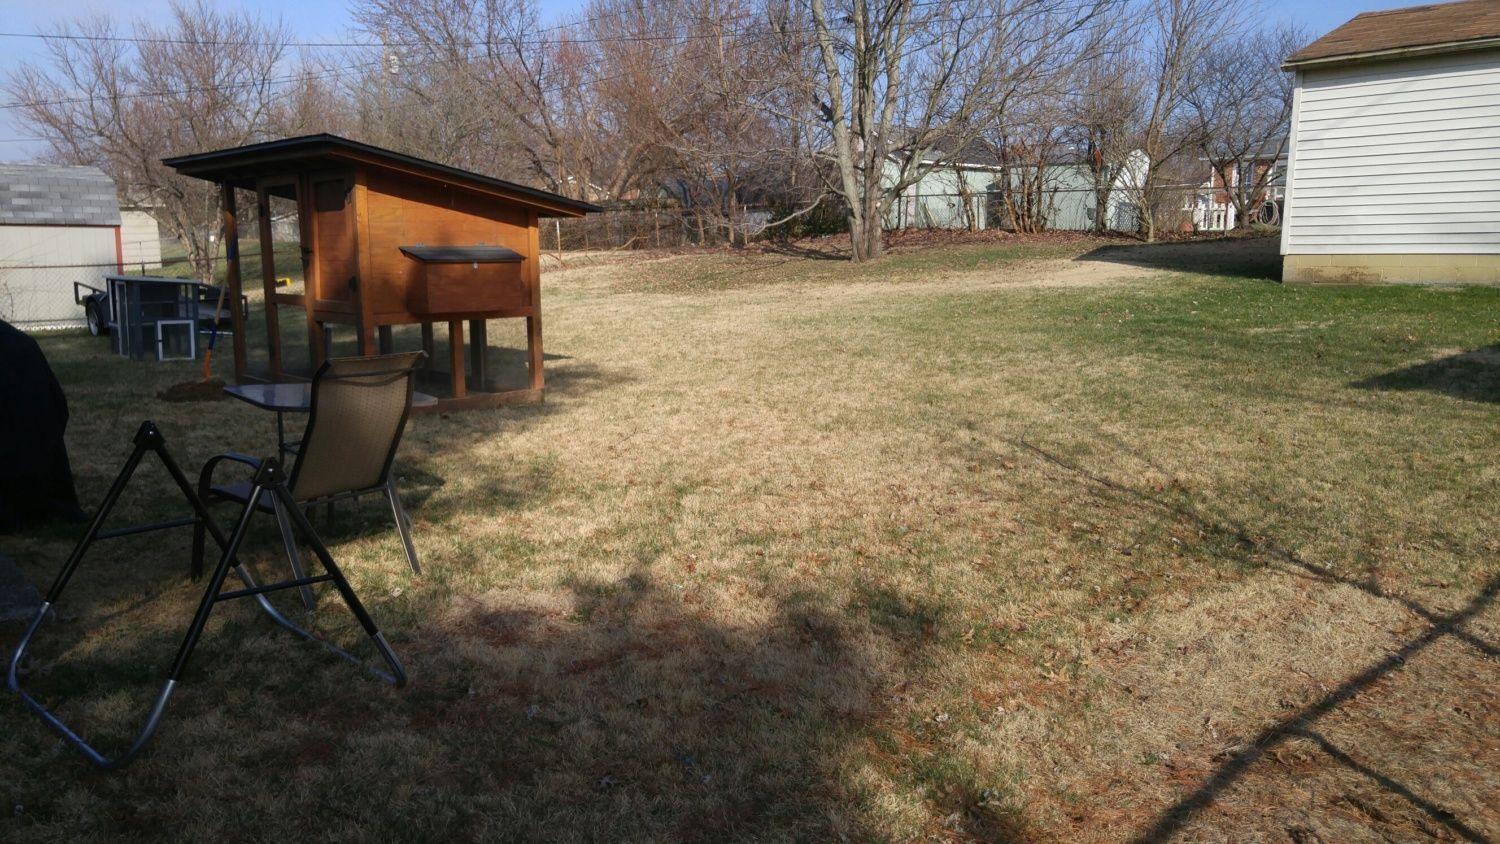 DonnaFreak's photos in Landscaping and Plantings for a Free Range Flock